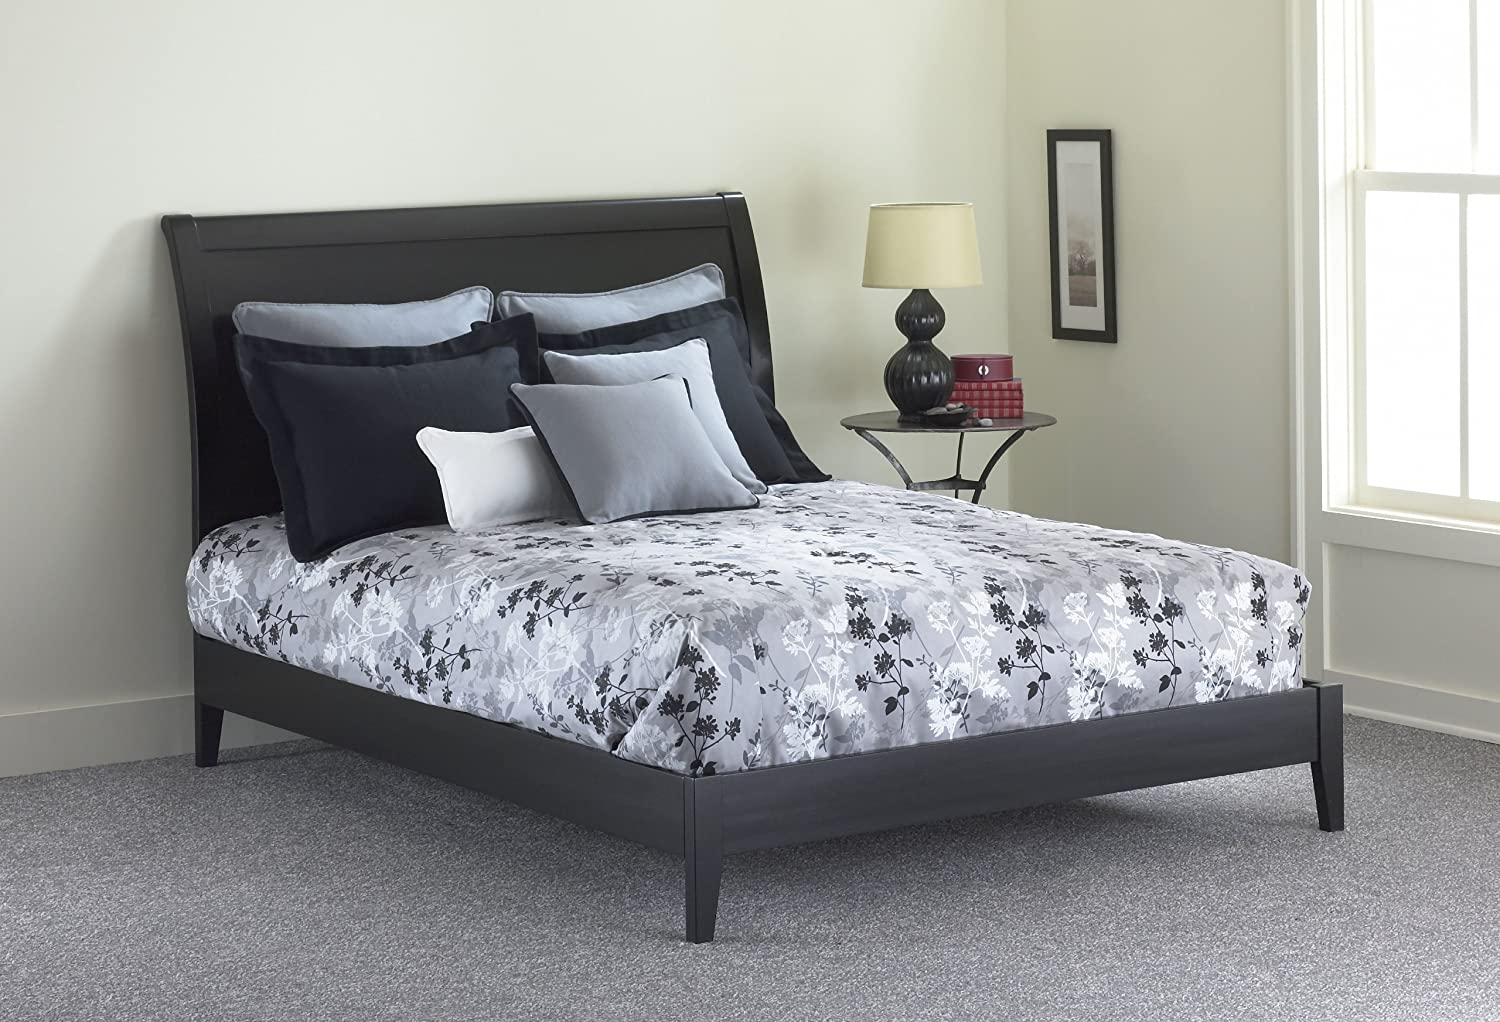 amazoncom java platform bed with wood frame and sleigh headboard blackfinish queen kitchen  dining. amazoncom java platform bed with wood frame and sleigh headboard